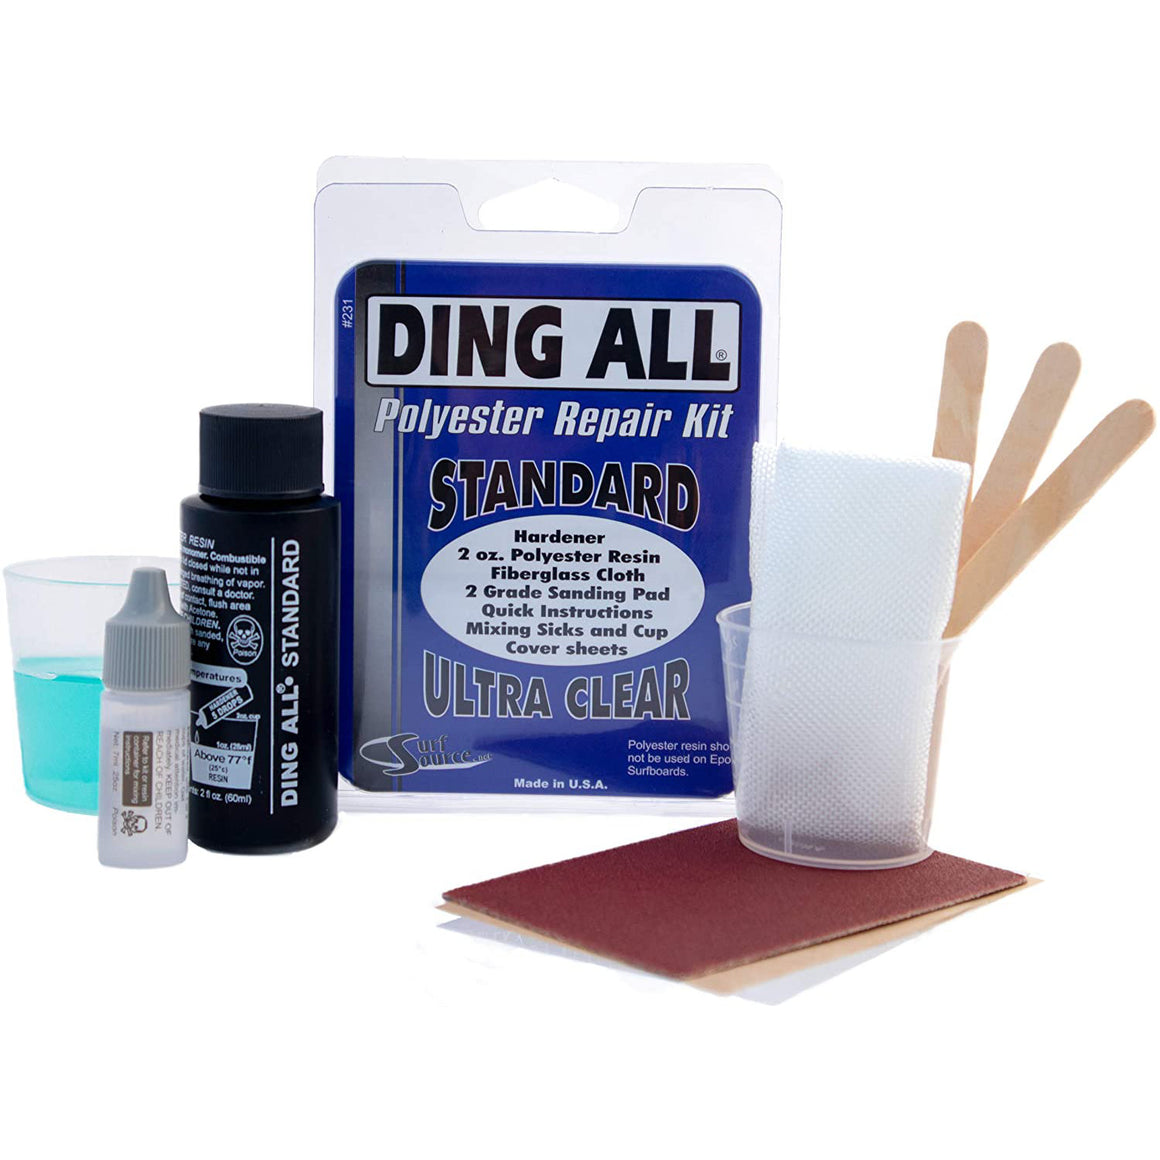 Ding Repair - Ding All Standard (polyester) Repair Kit